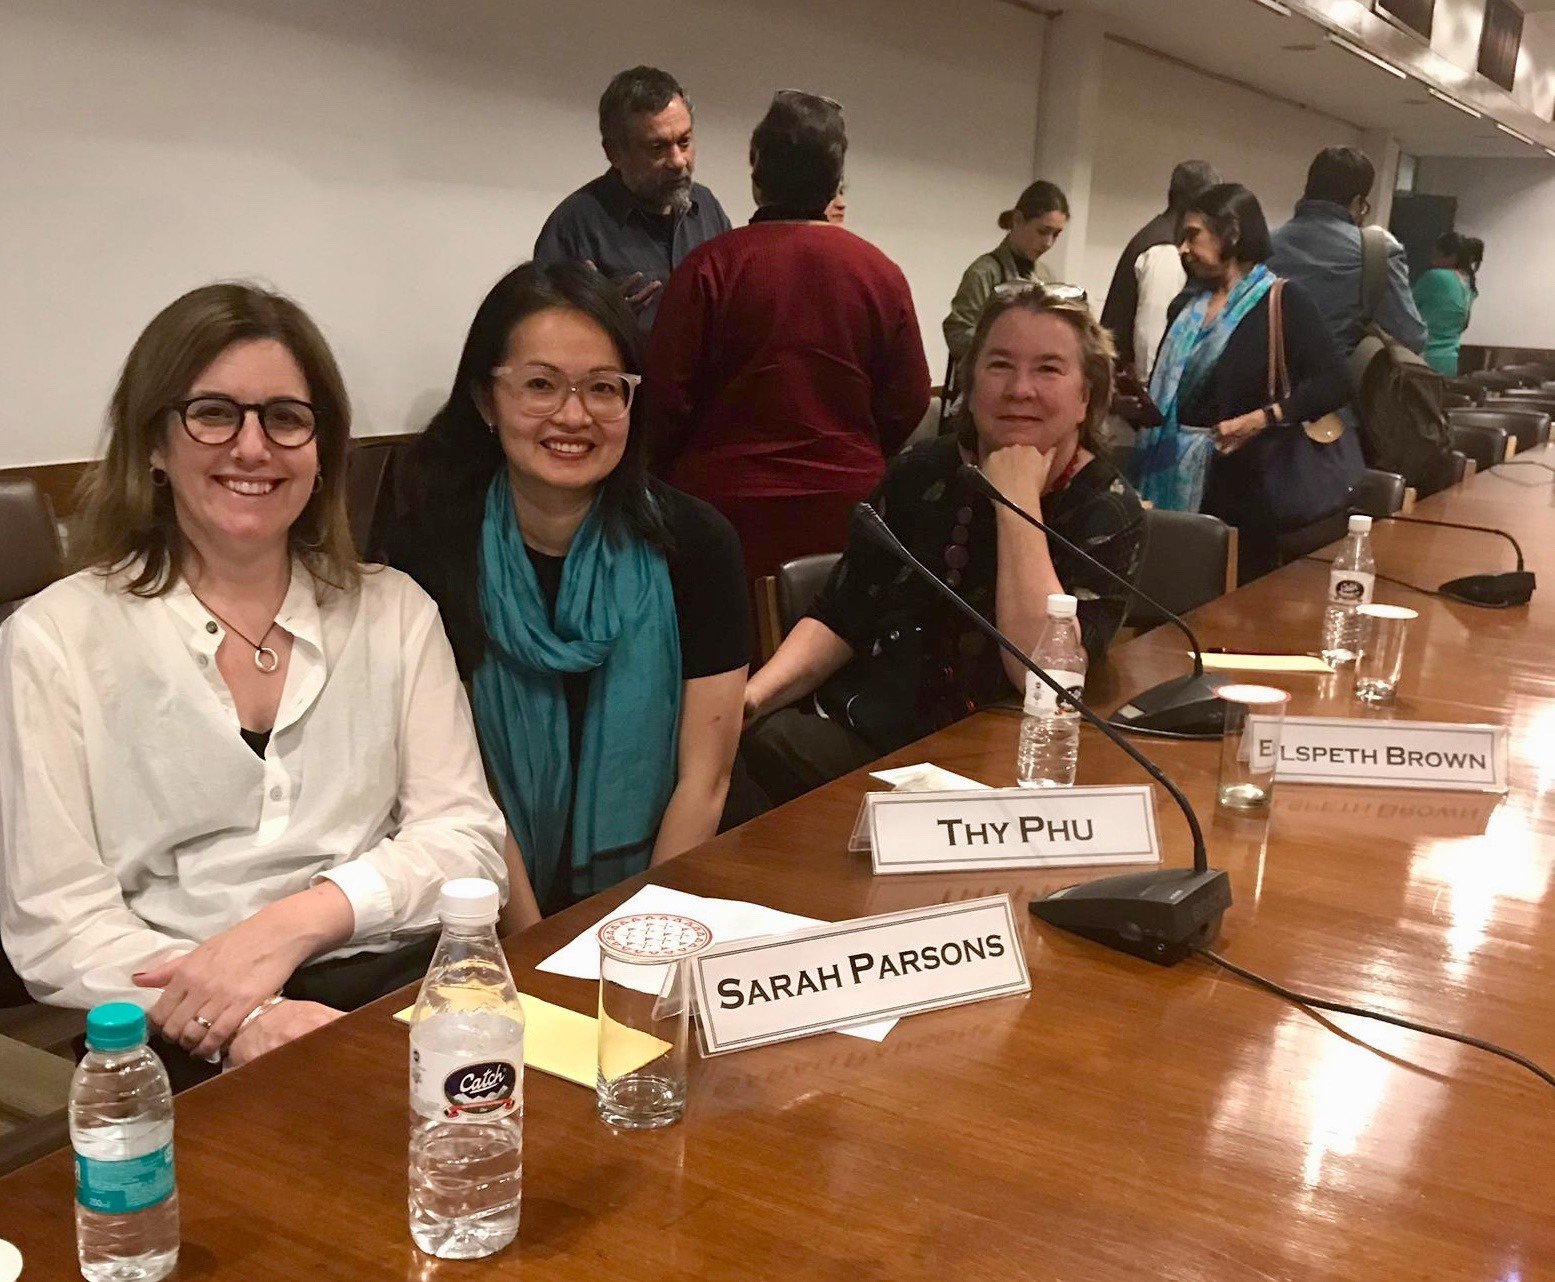 Sarah Parsons, Thy Phu and Elspeth Brown at IIC event (Photo: Michael Tang, 2019).